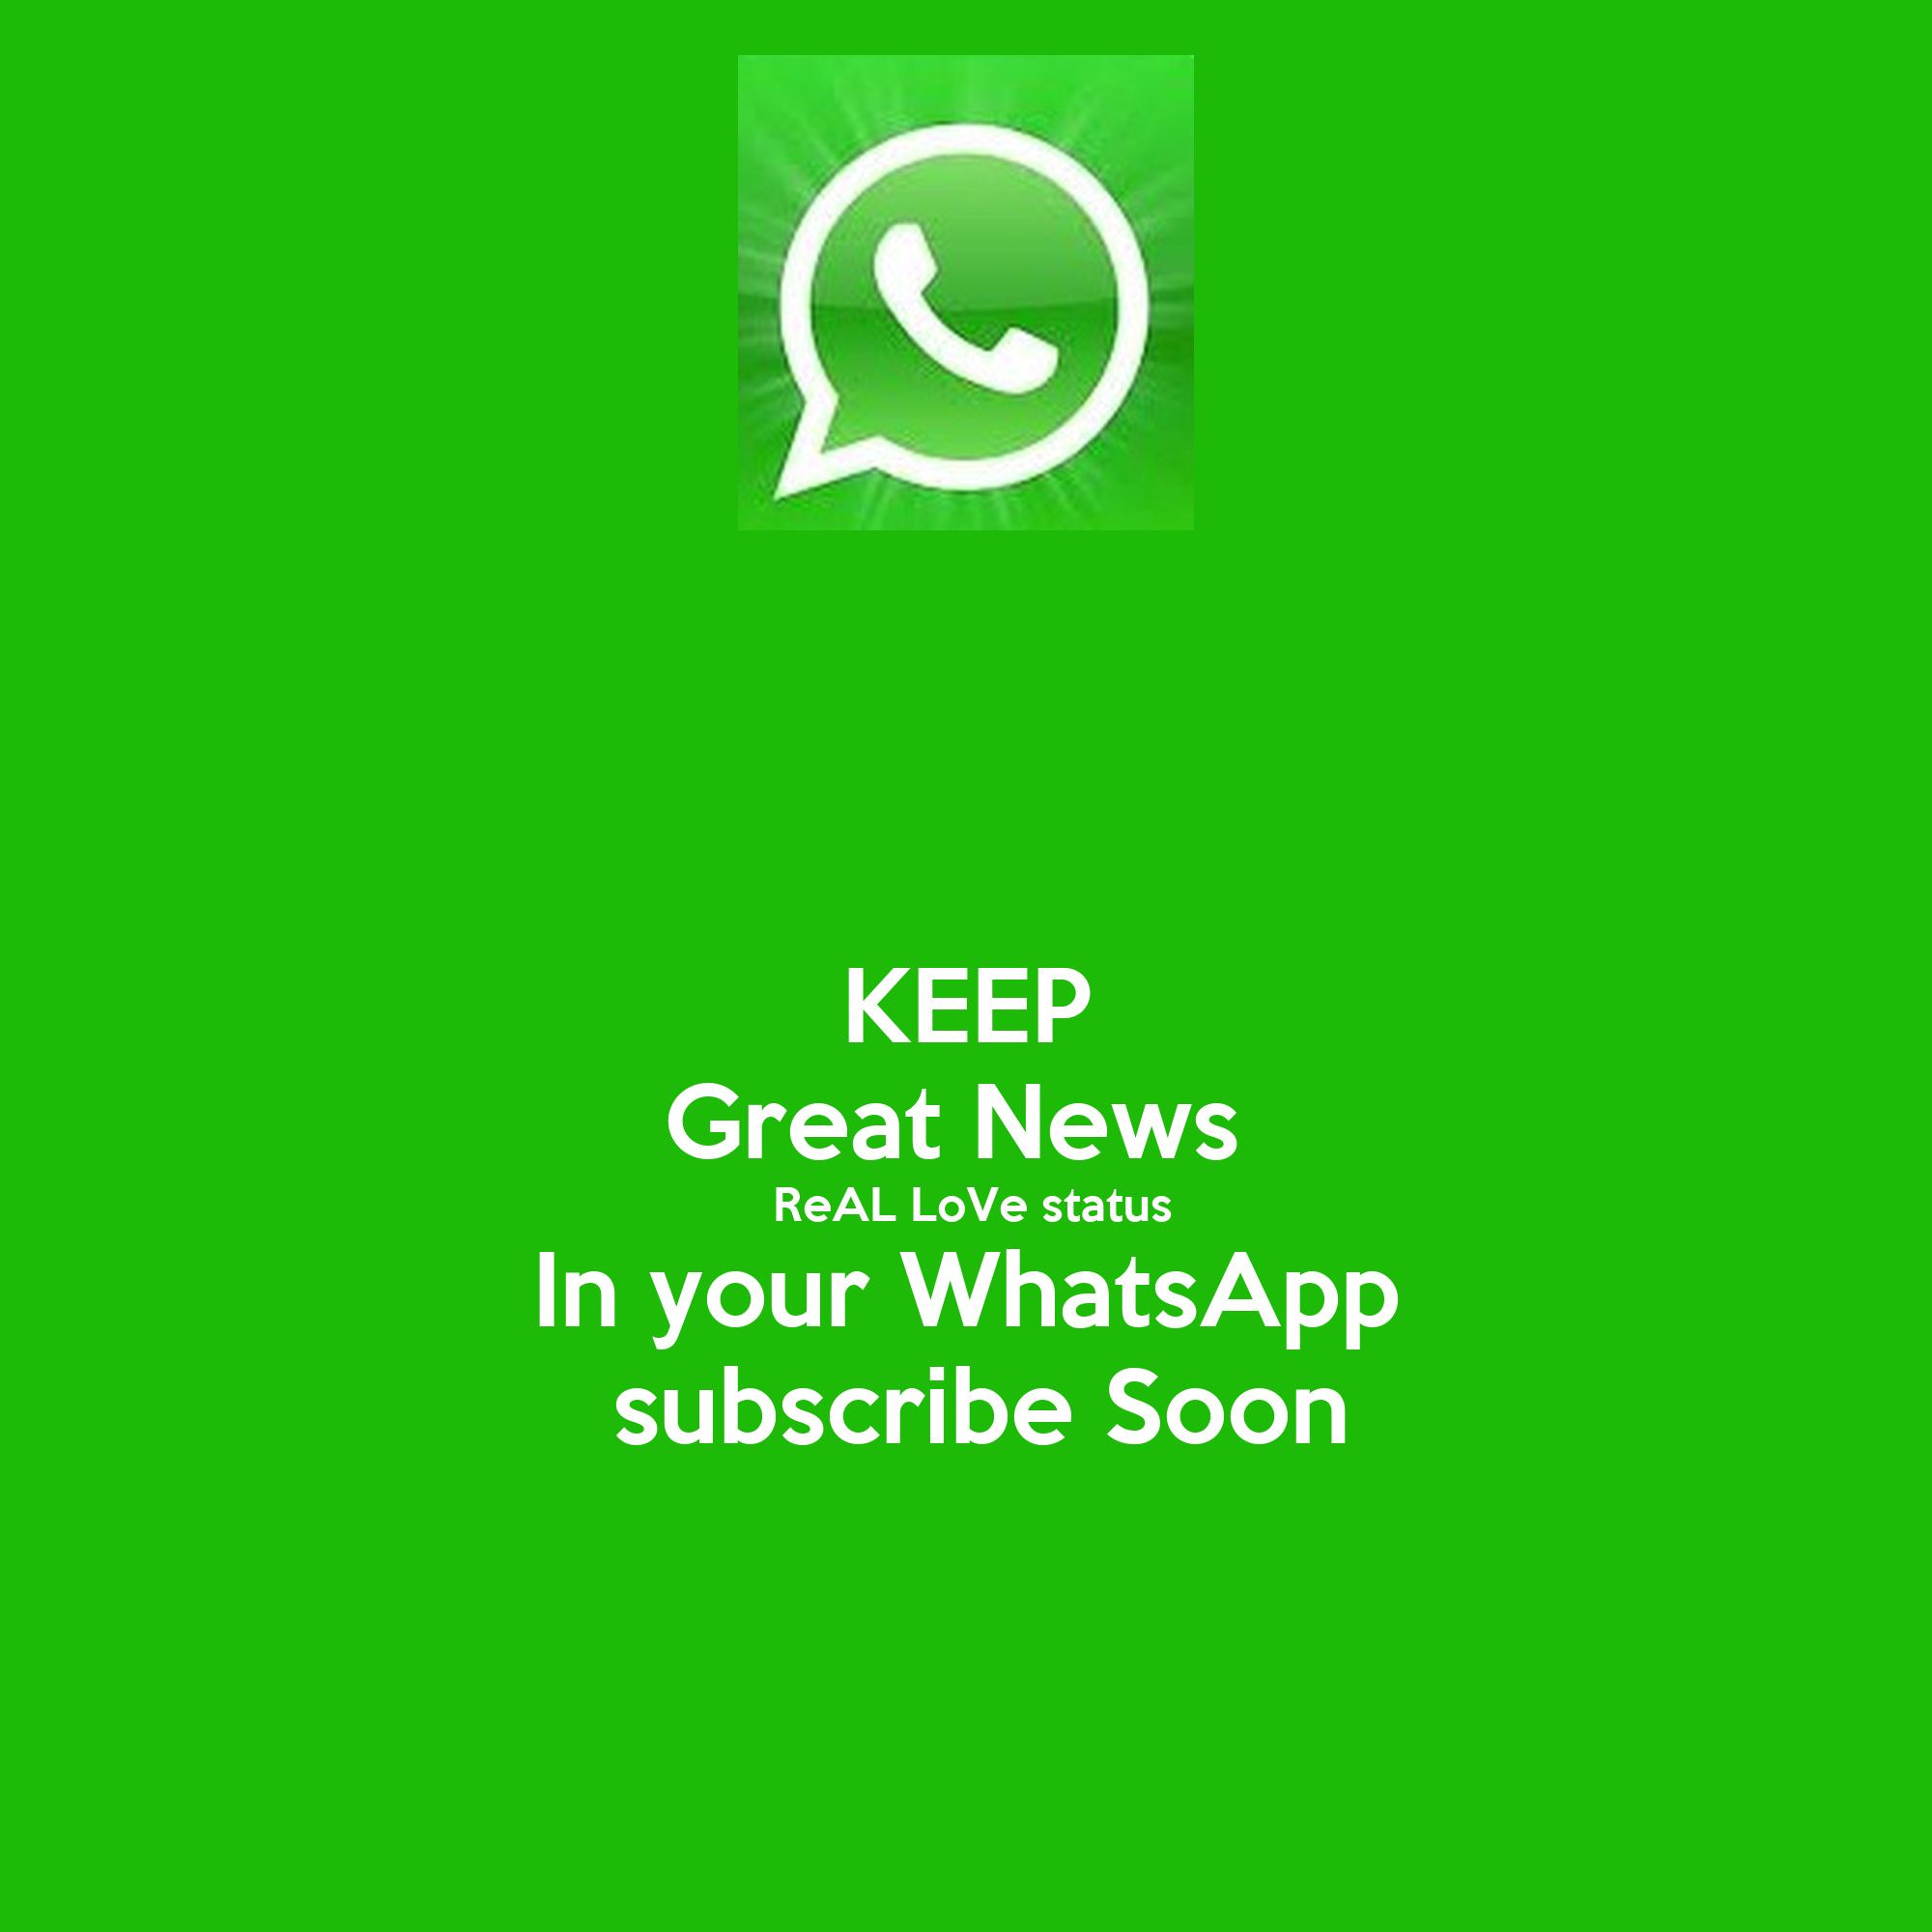 KEEP Great News ReAL LoVe status In your WhatsApp ...